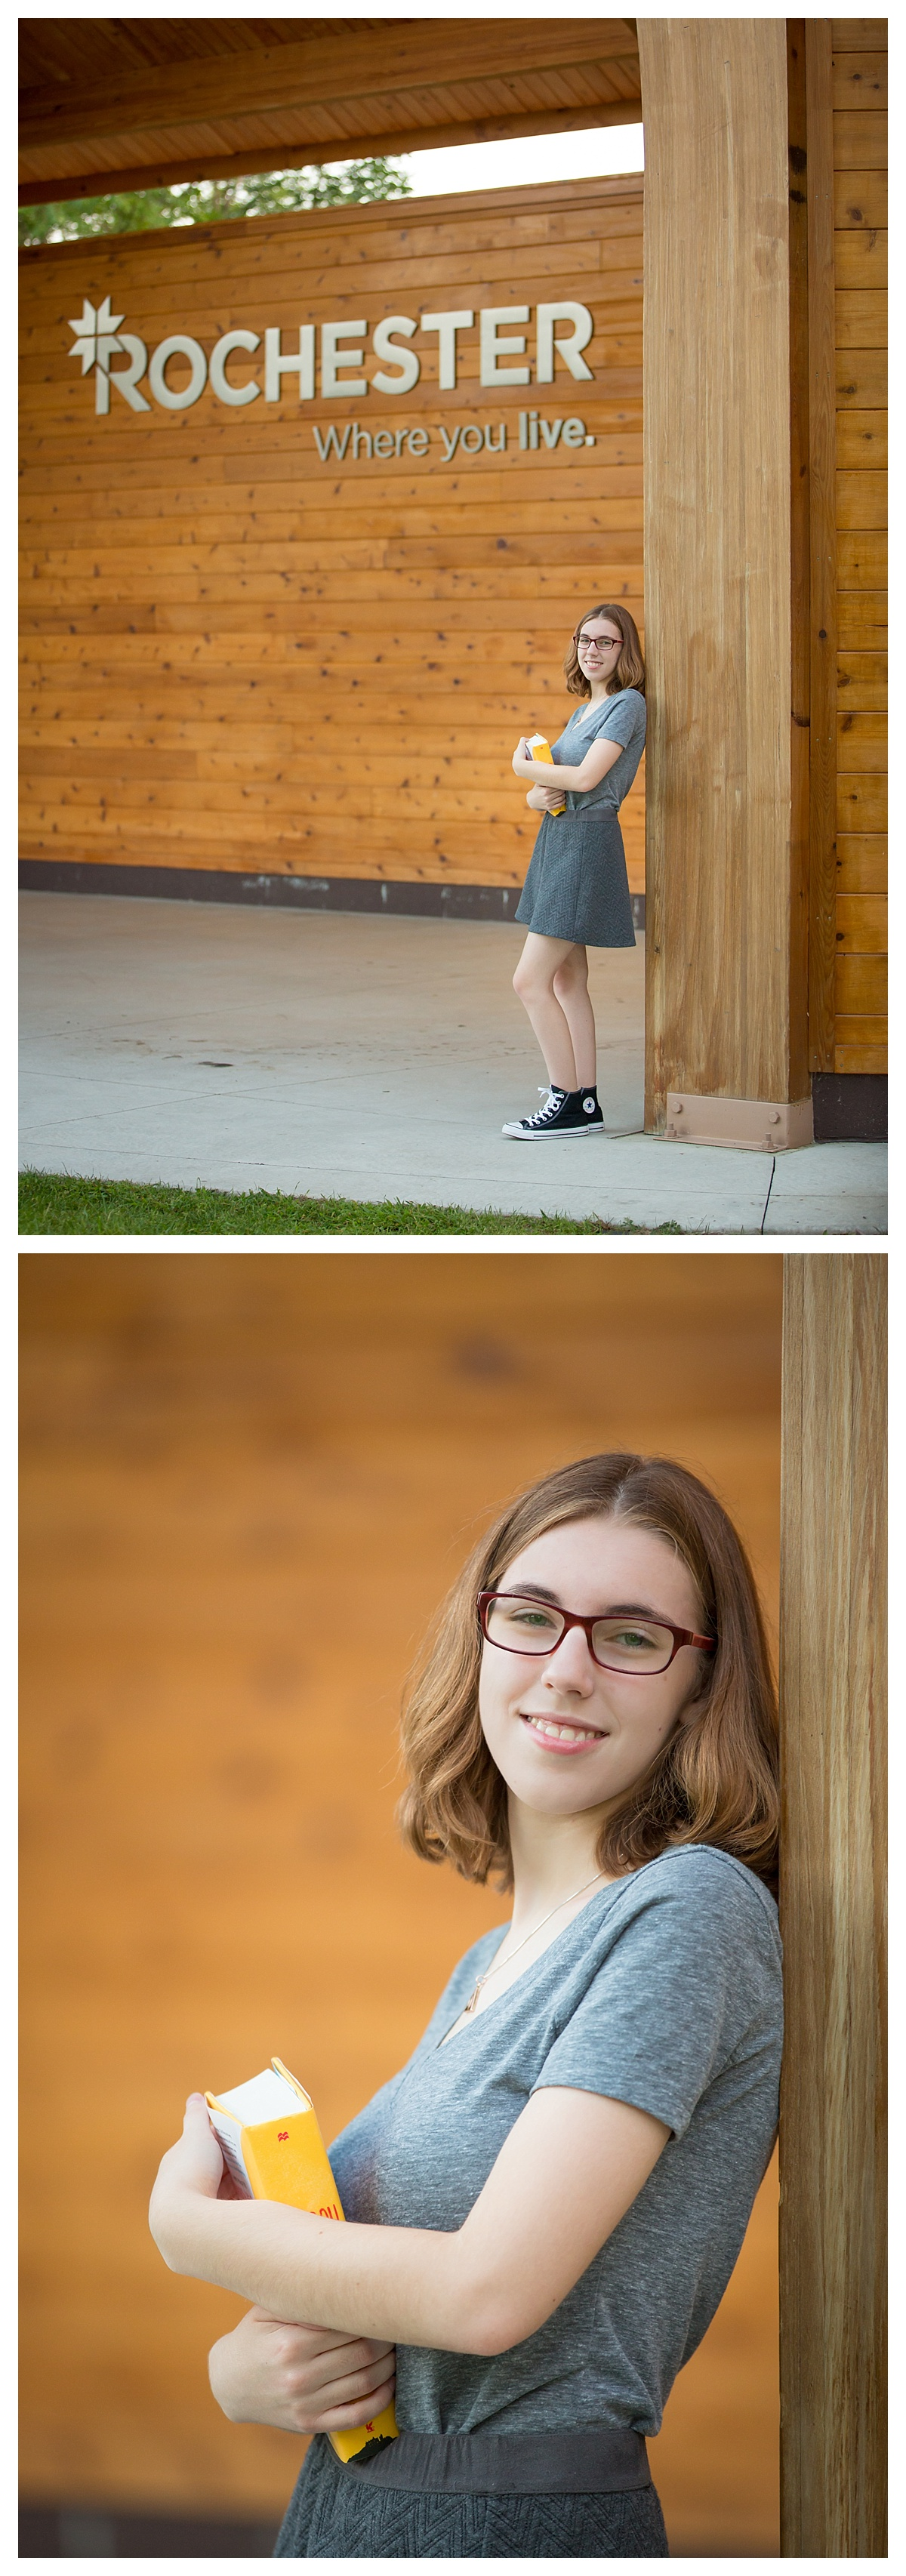 Rochester, Where you Live Senior Portrait Session